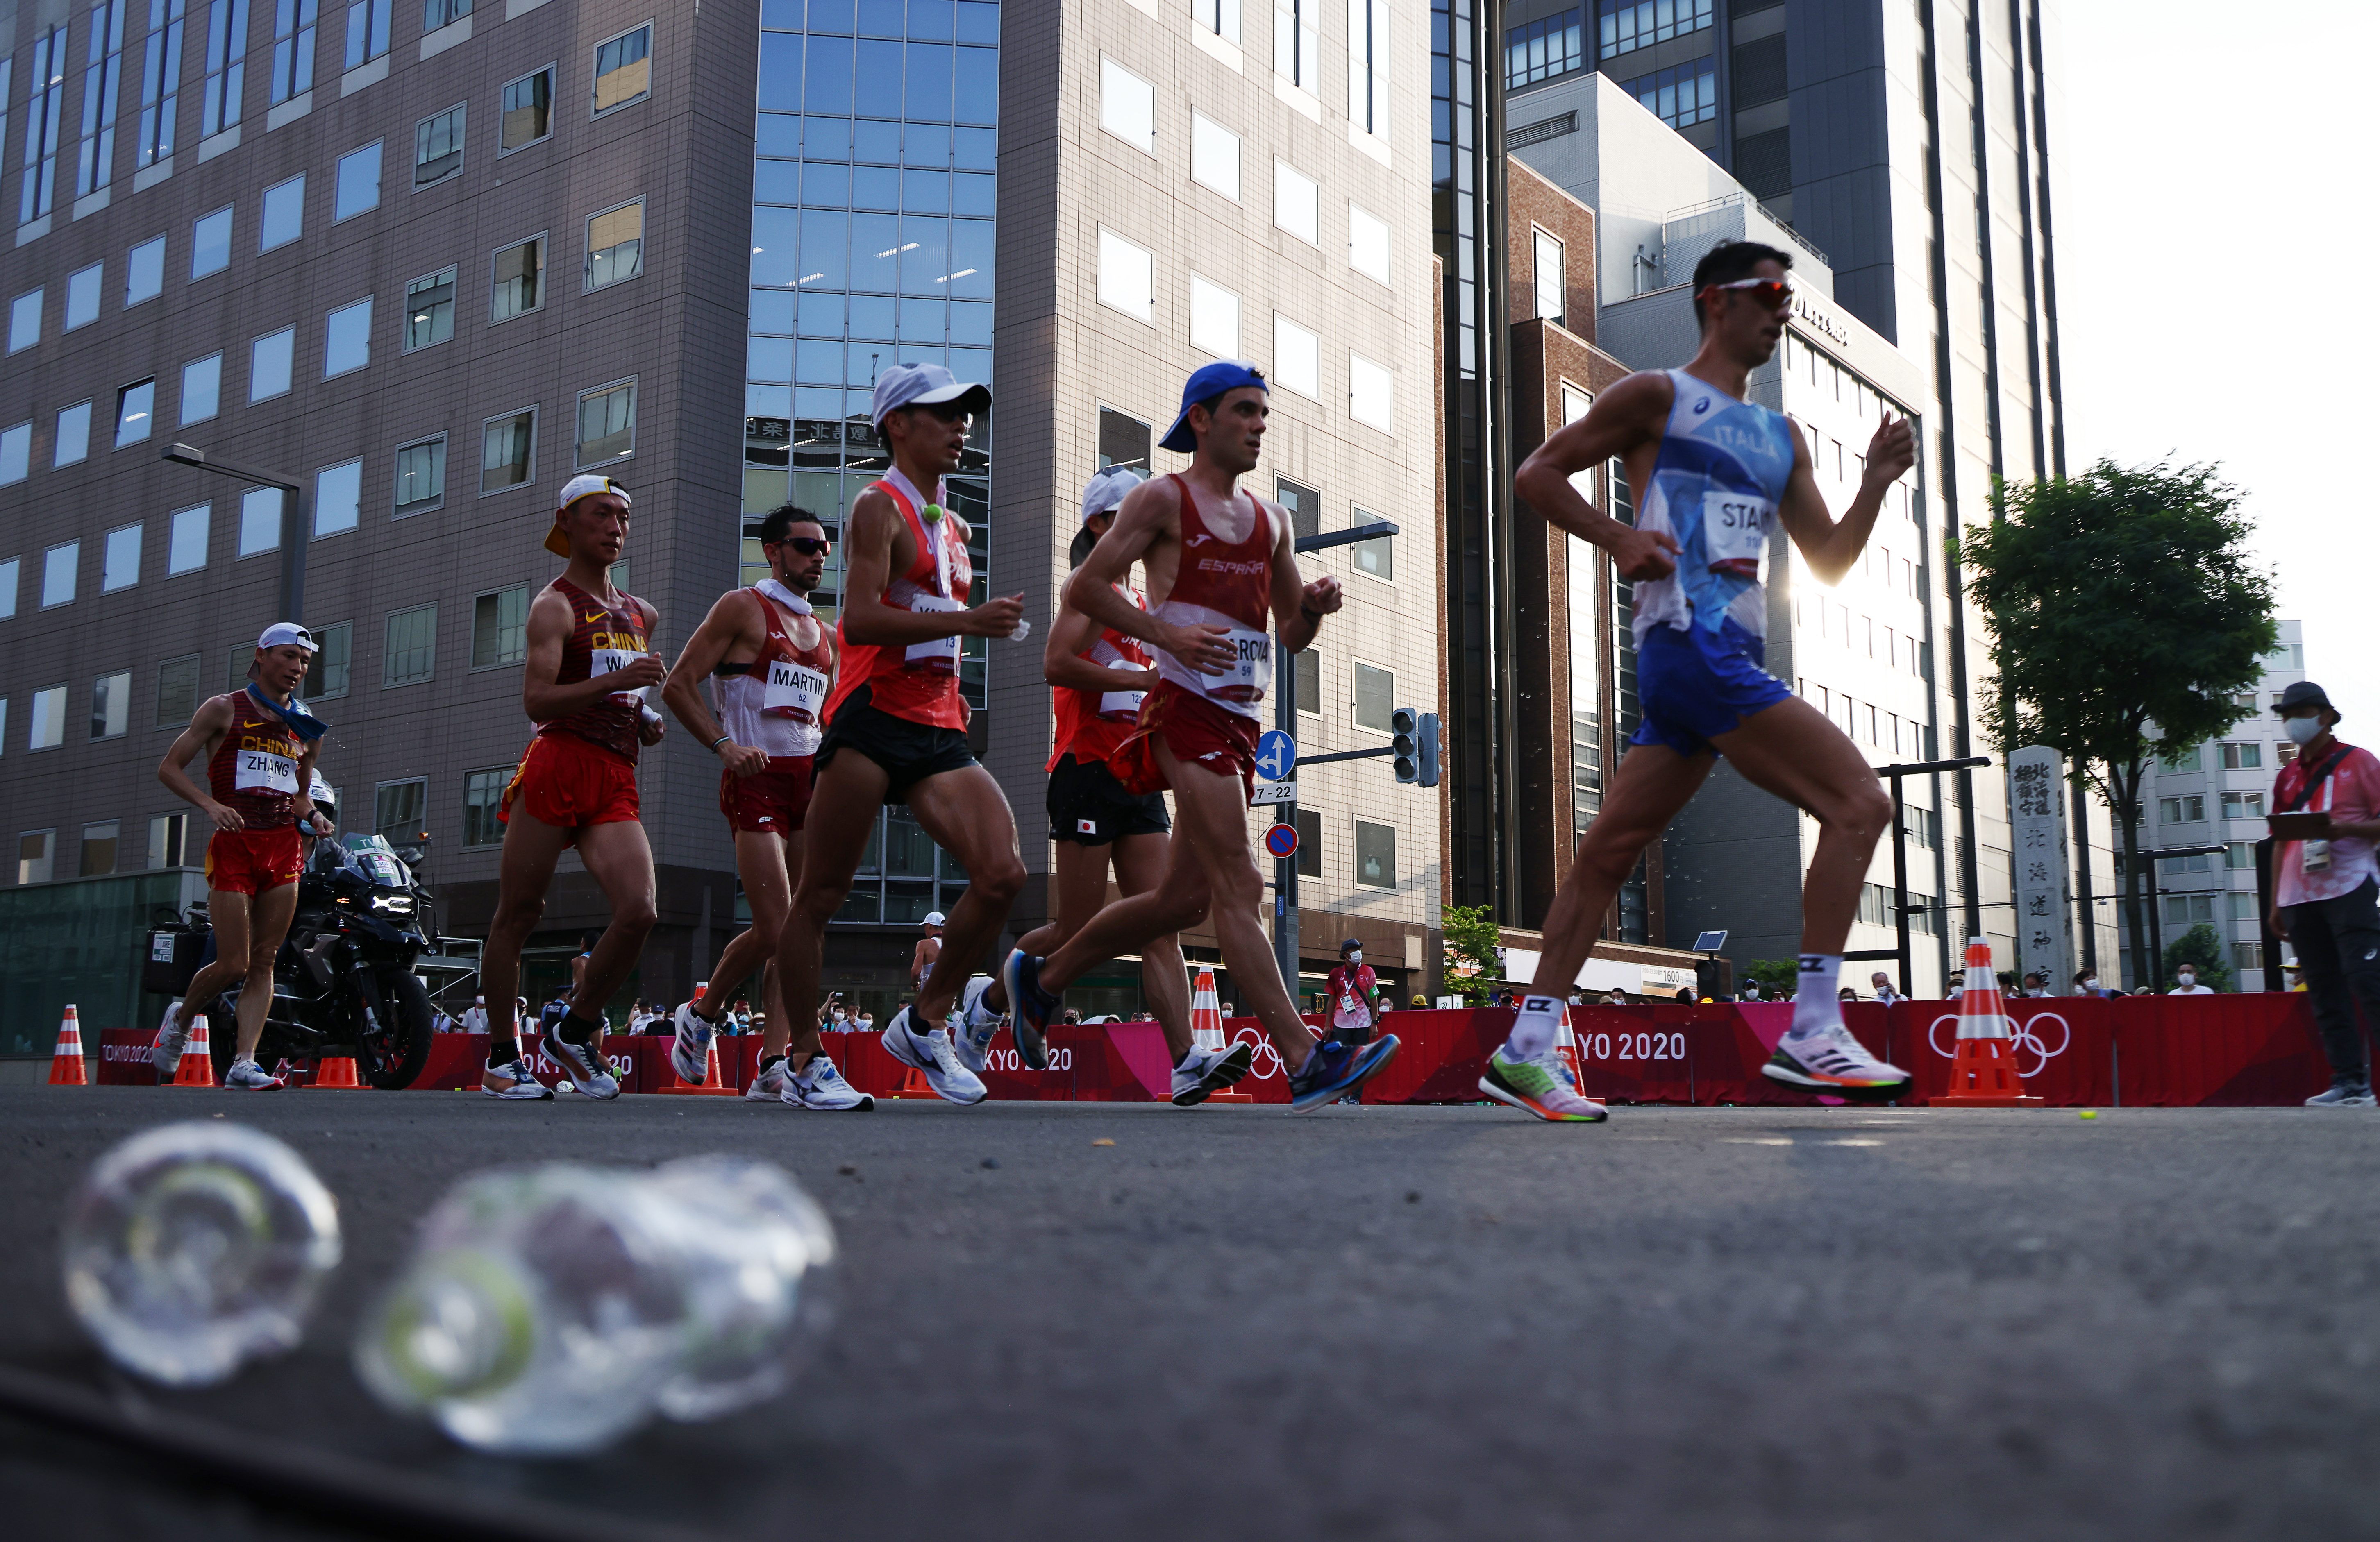 Tokyo 2020 Olympics - Athletics - Men's 20km Walk - Sapporo Odori Park, Sapporo, Japan - August 5, 2021. General view of athletes in action with Massimo Stano of Italy ahead REUTERS/Kim Hong-Ji